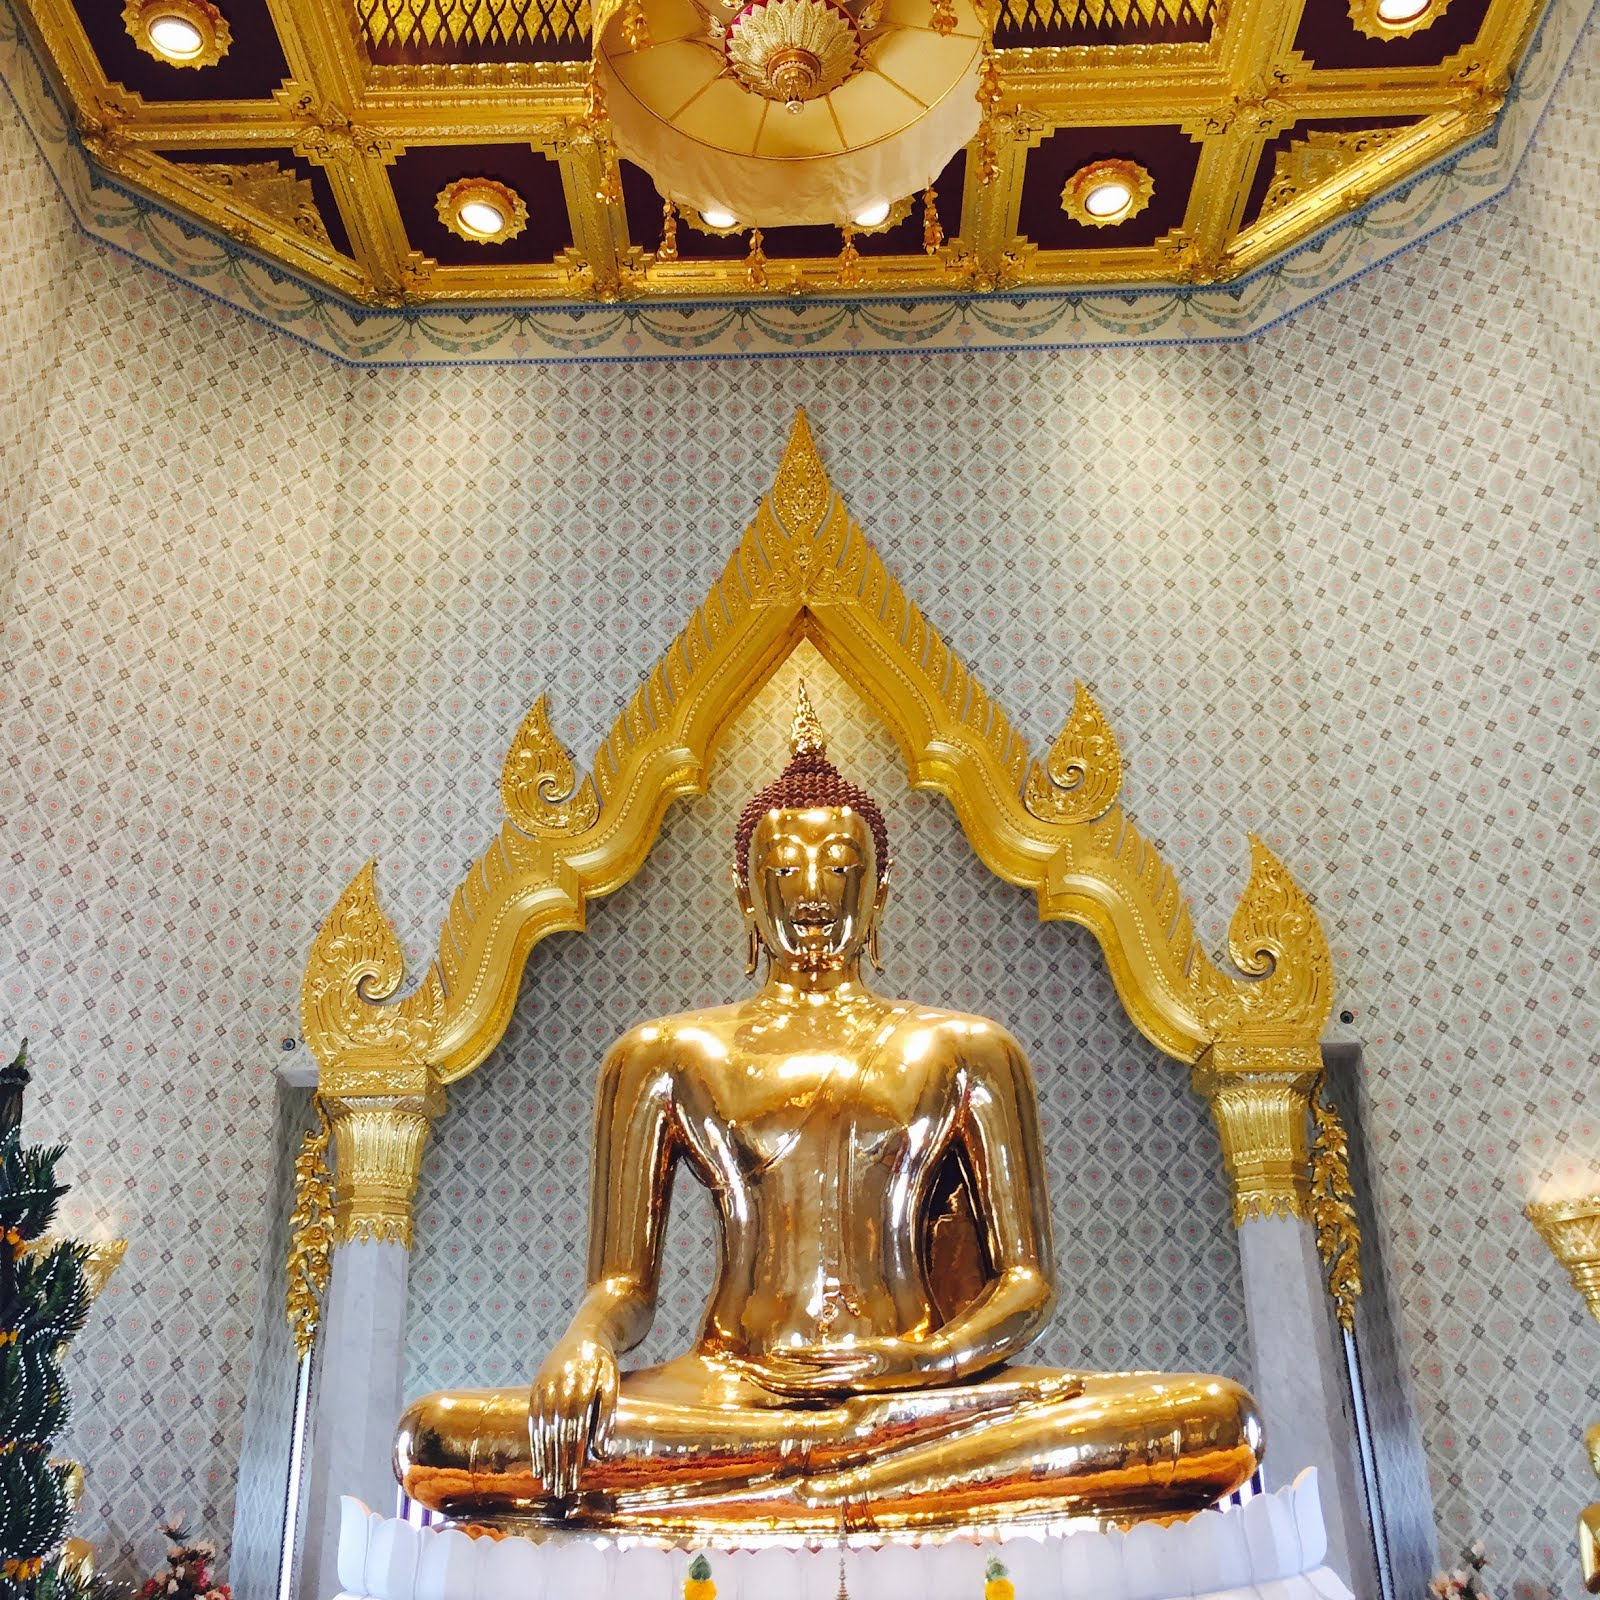 Golden Budda in South East Asia